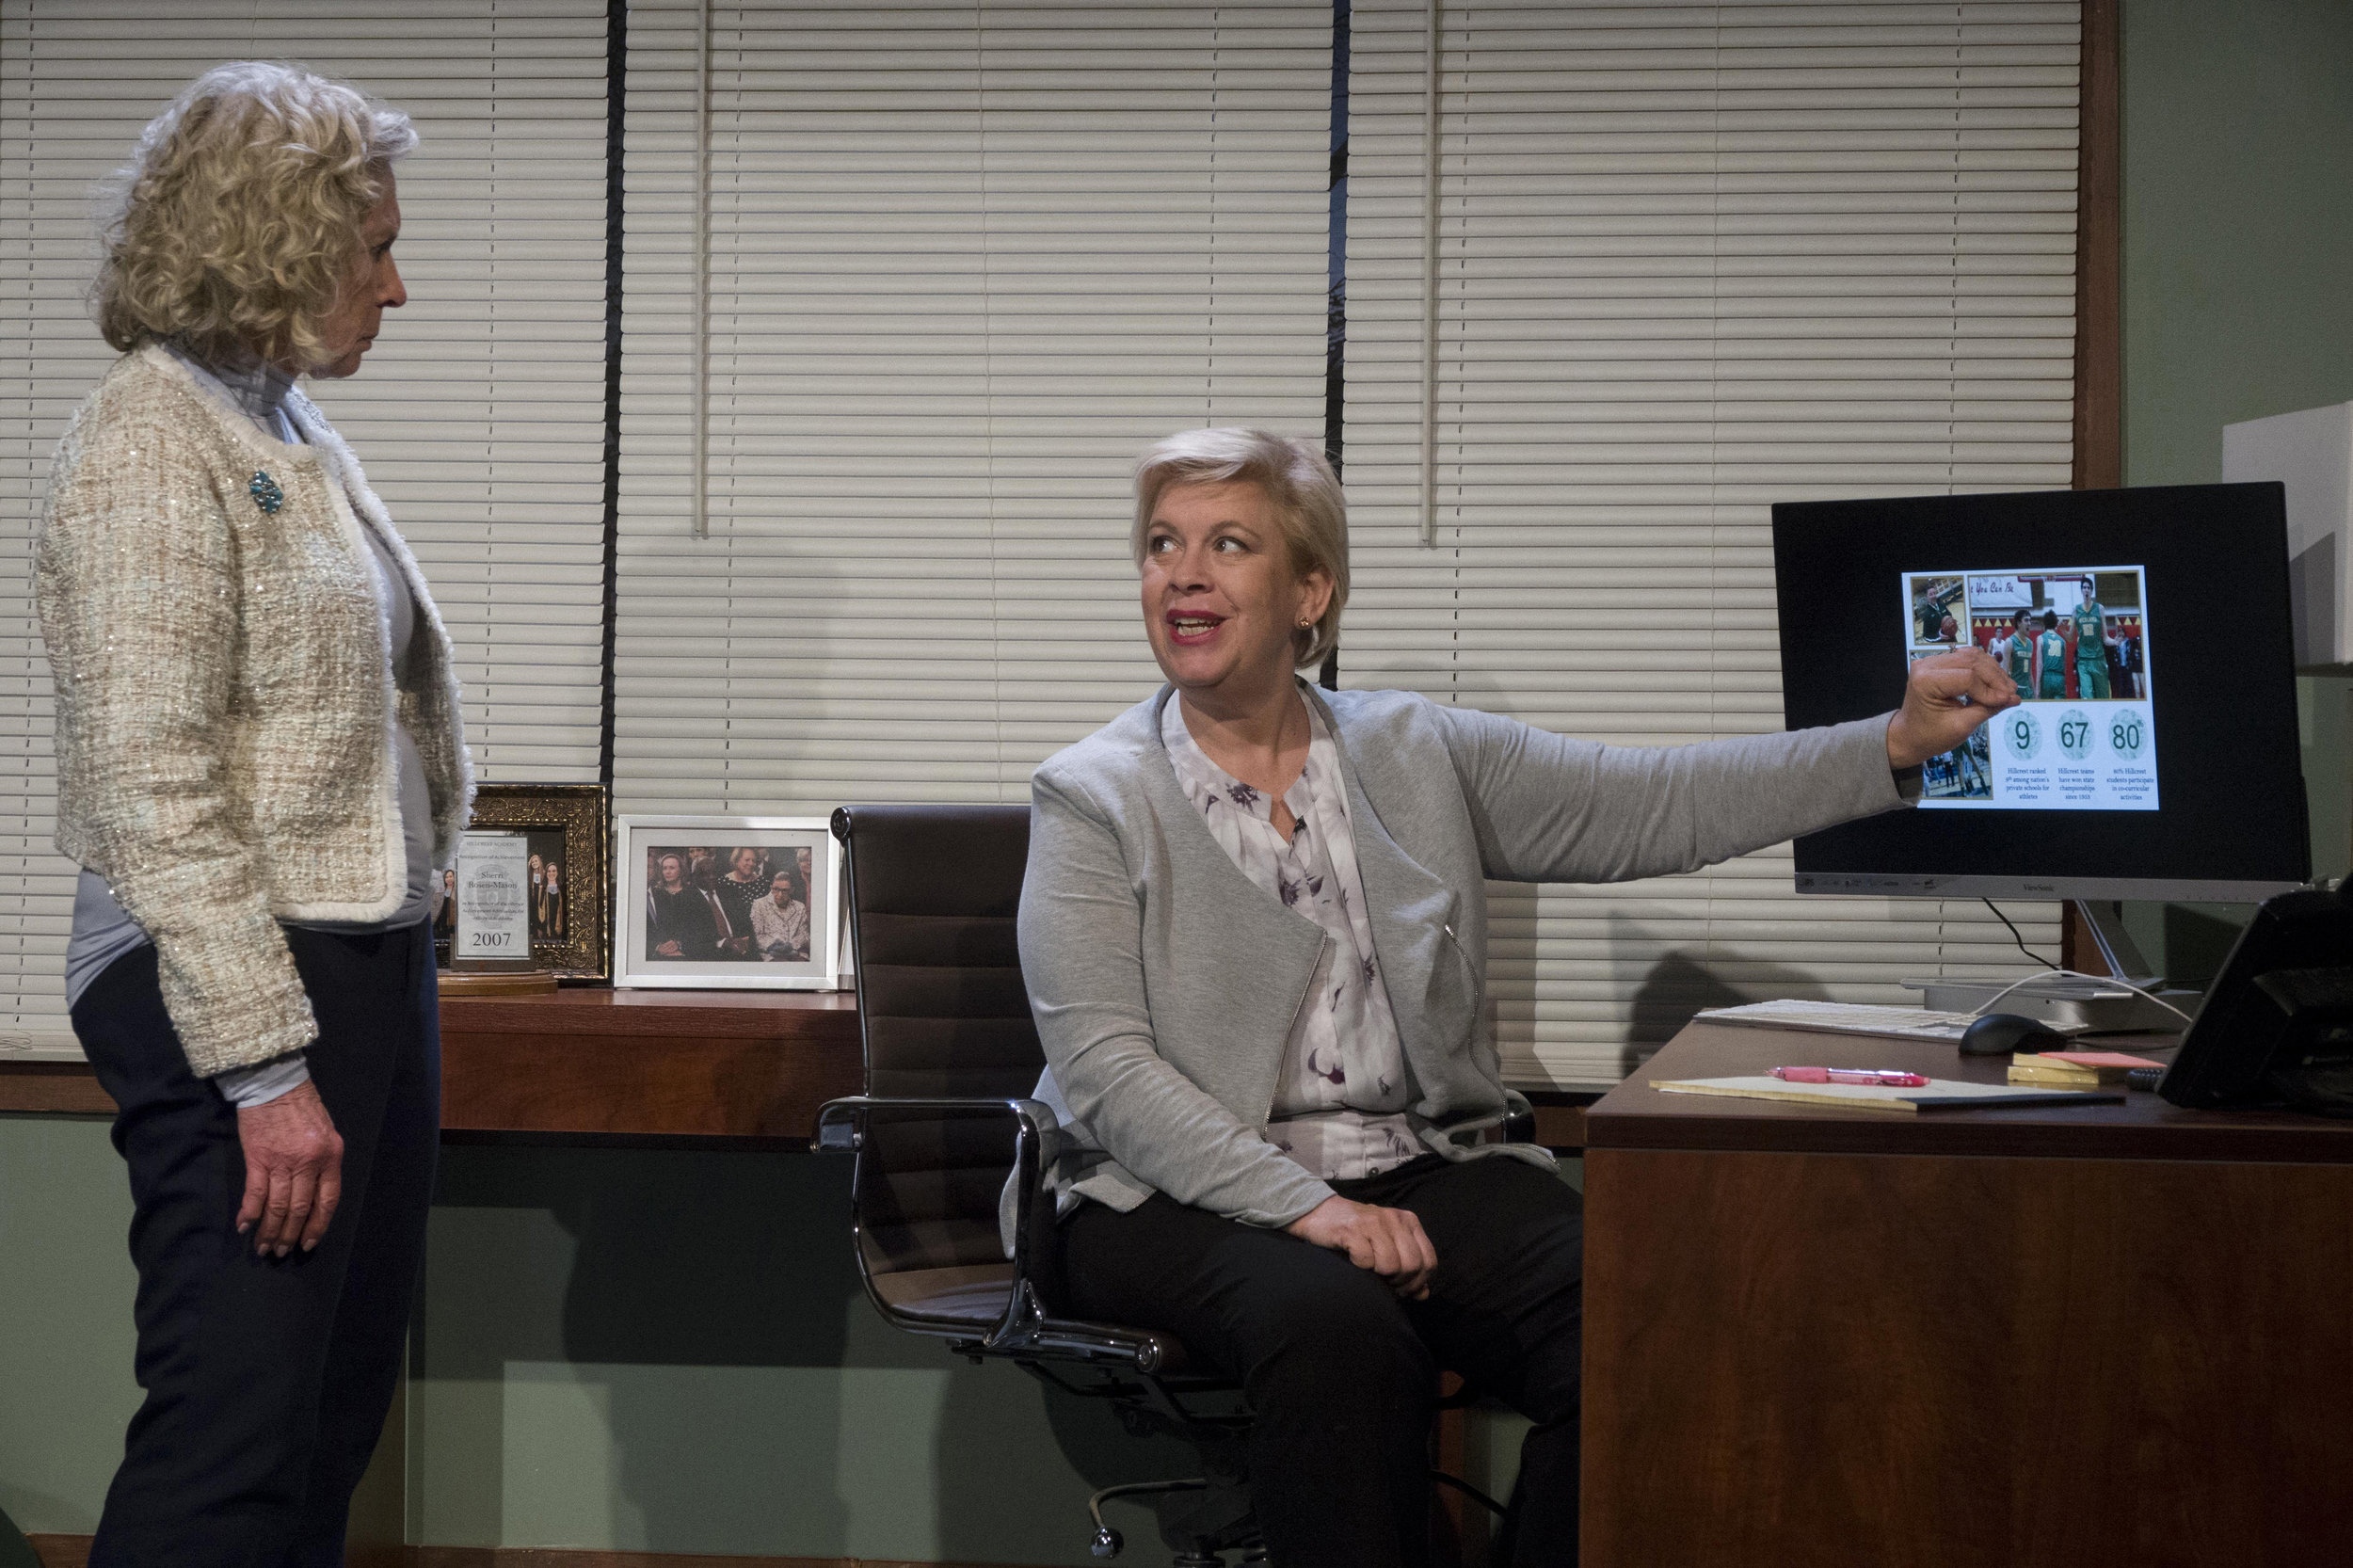 Judi Schindler and Meighan Gerachis in ADMISSIONS. Photo credit: Charles Osgood